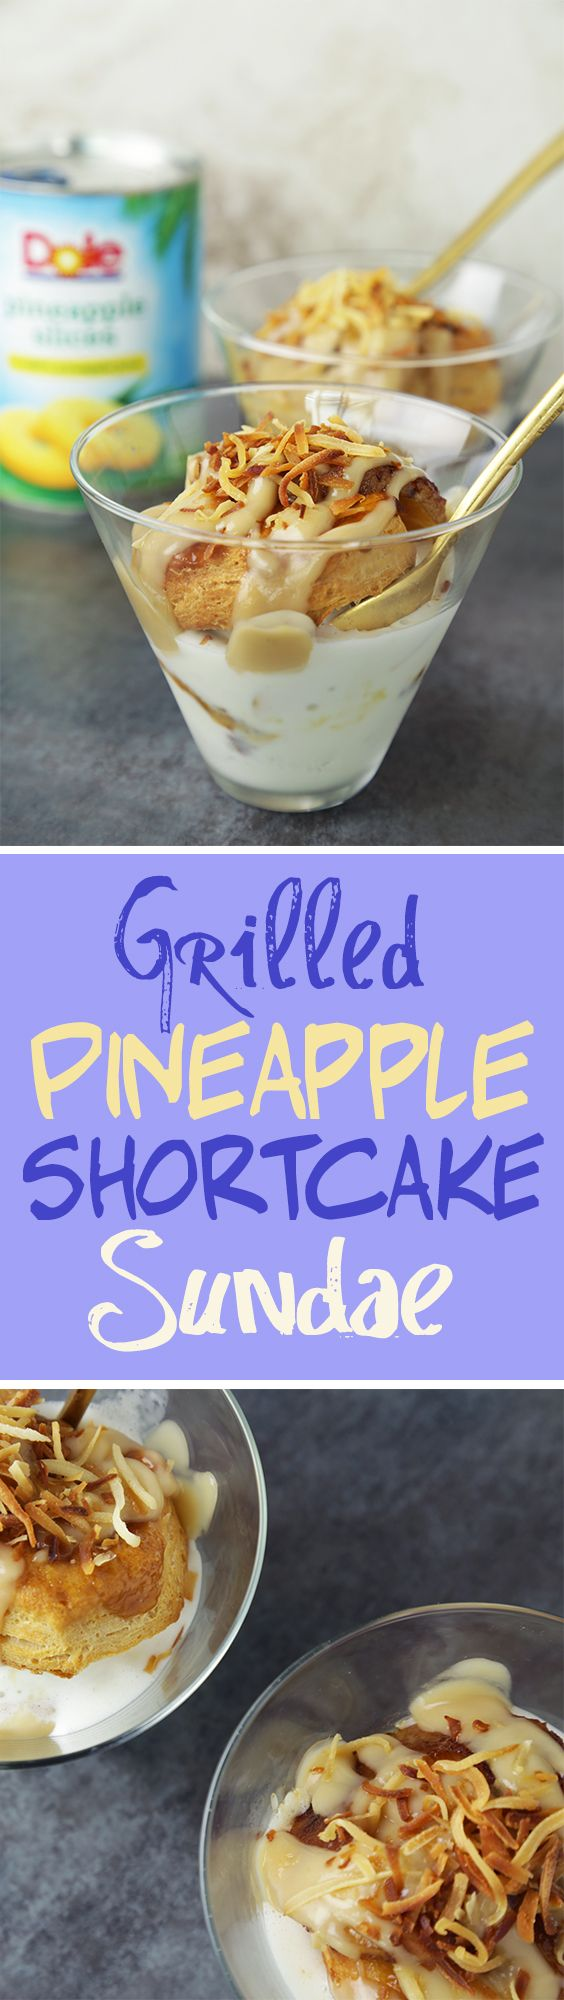 Sundae Funday! Try these yummy Grilled Pineapple Shortcake Sundaes made with Dole Canned Pineapple Slices, vanilla ice cream, whipped cream and shredded coconut. Can't stop, won't stop!